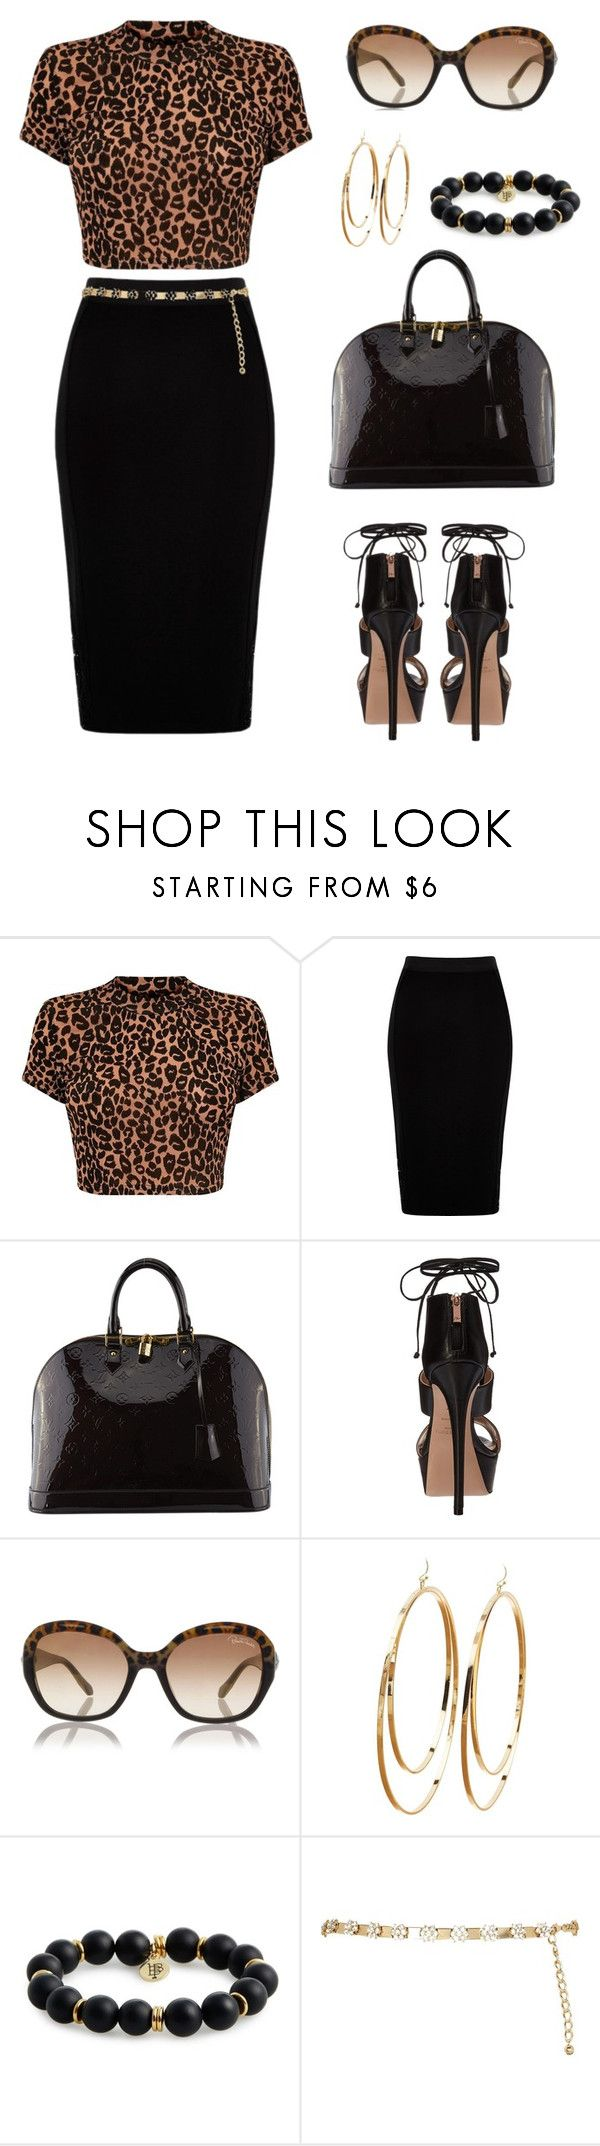 """Untitled #1443"" by gallant81 ❤ liked on Polyvore featuring River Island, Louis Vuitton, Ruthie Davis, Roberto Cavalli, Charlotte Russe and Bourbon and Boweties"